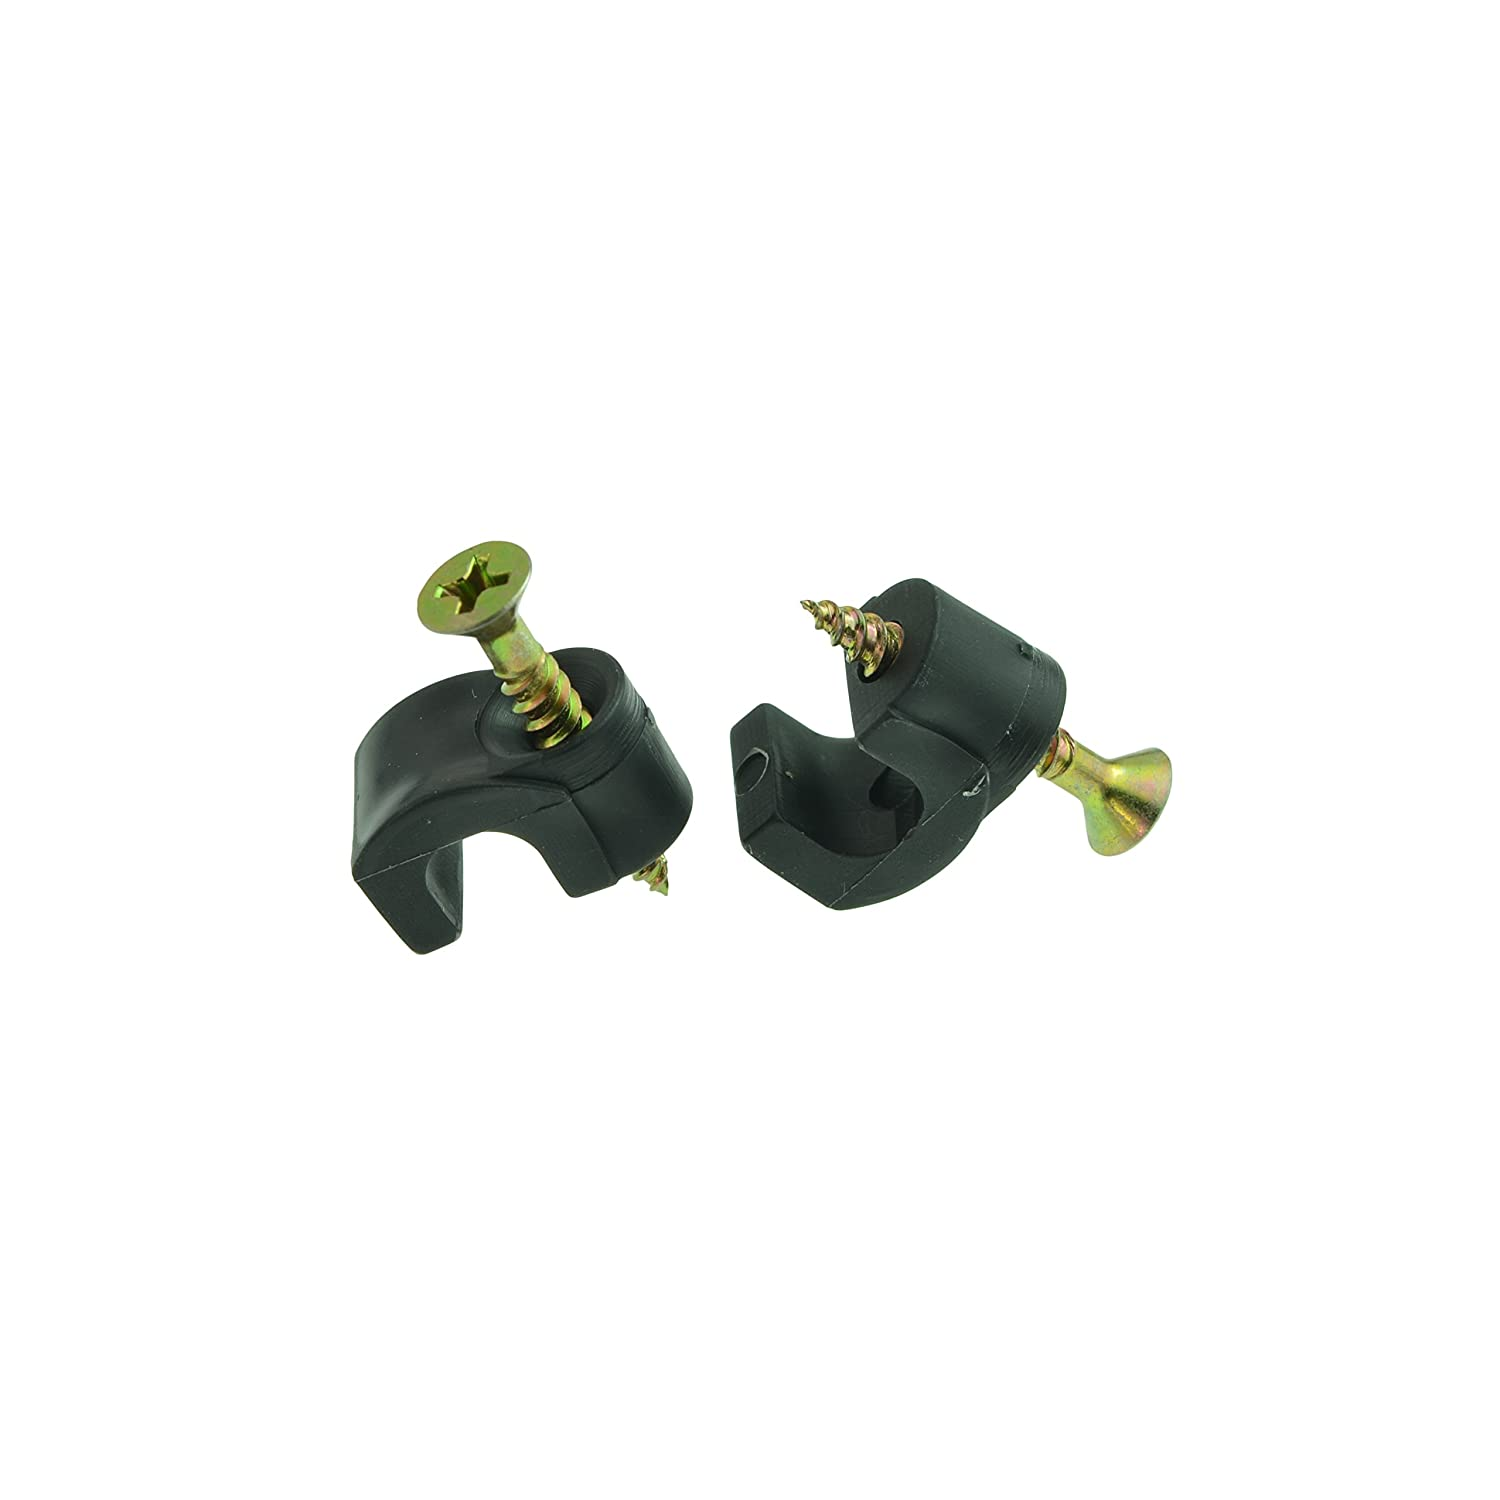 with 1 inch Slotted//Phillips Hex Head Type AB Tapping Screw for RG6 100 pcs - Black Mediabridge 7mm Cable Clips 0.275in Diameter Part# MCC1-70H-BLA